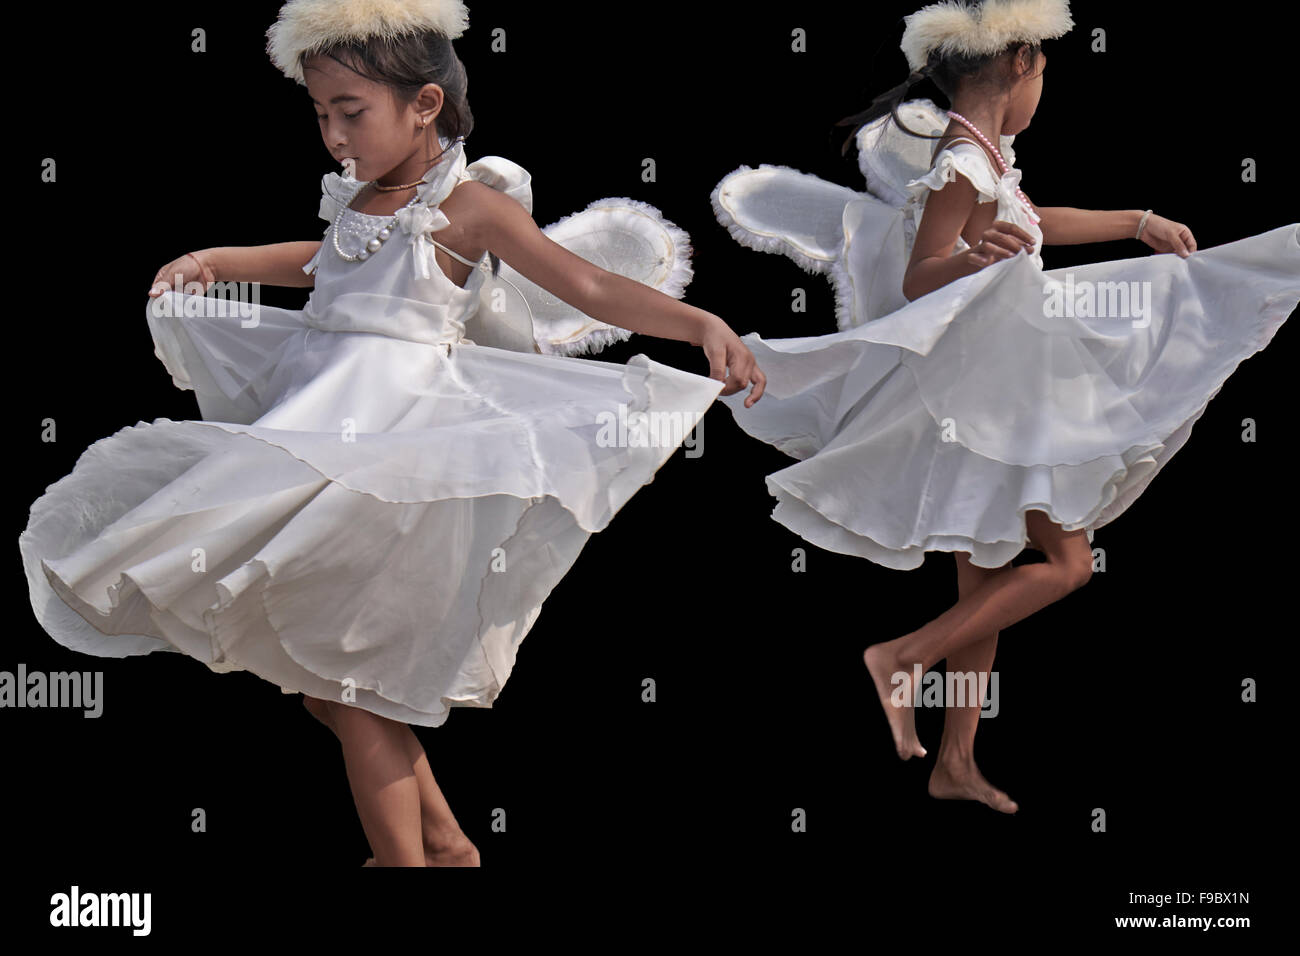 Young Thai girls, dressed as Angels, twirling and spinning as part of their dance routine. - Stock Image